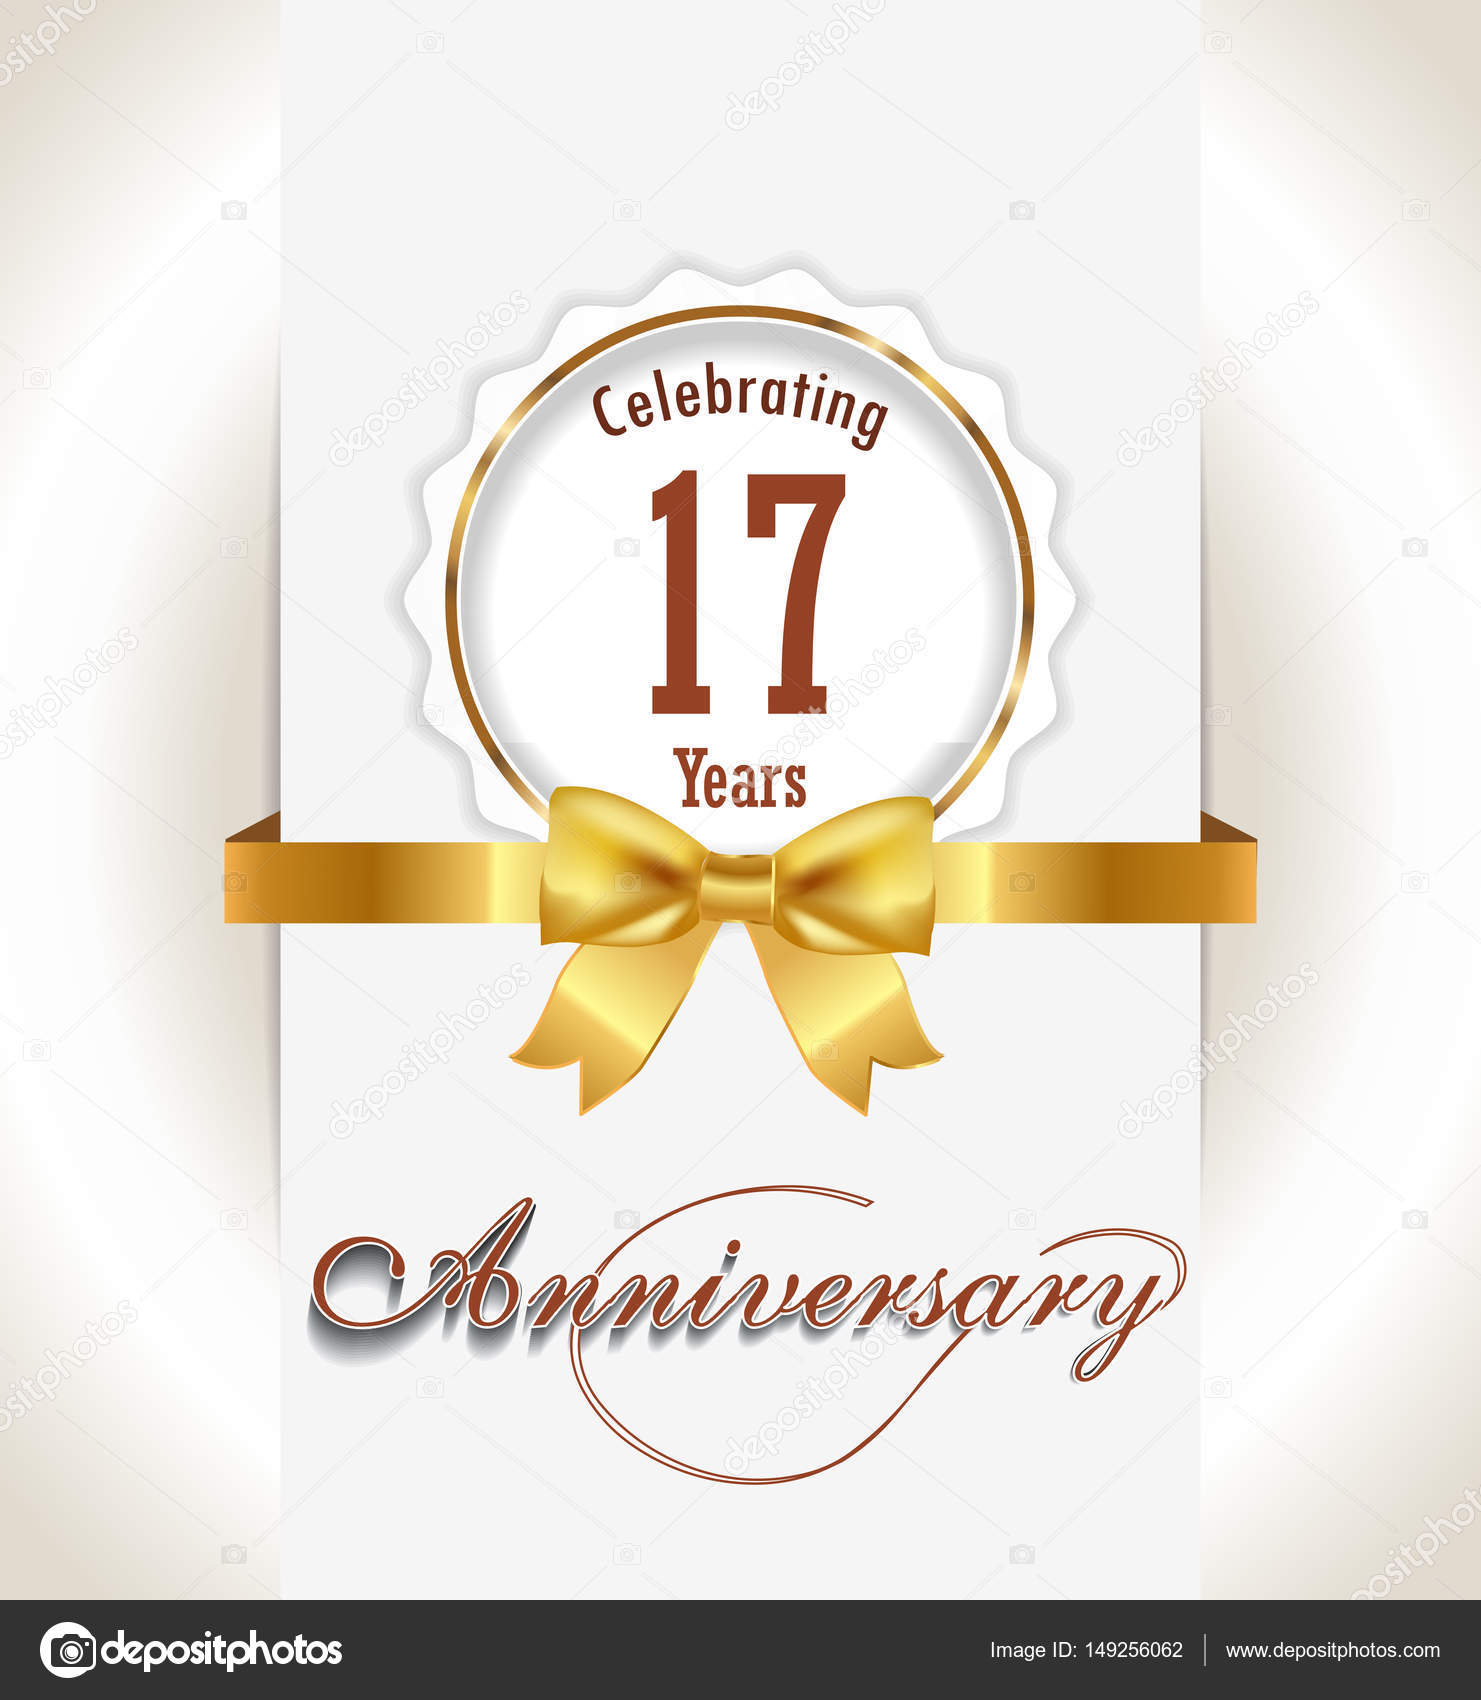 Anniversary background anniversary celebration invitation card anniversary background anniversary celebration invitation card vector eps 10 stock photo stopboris Image collections